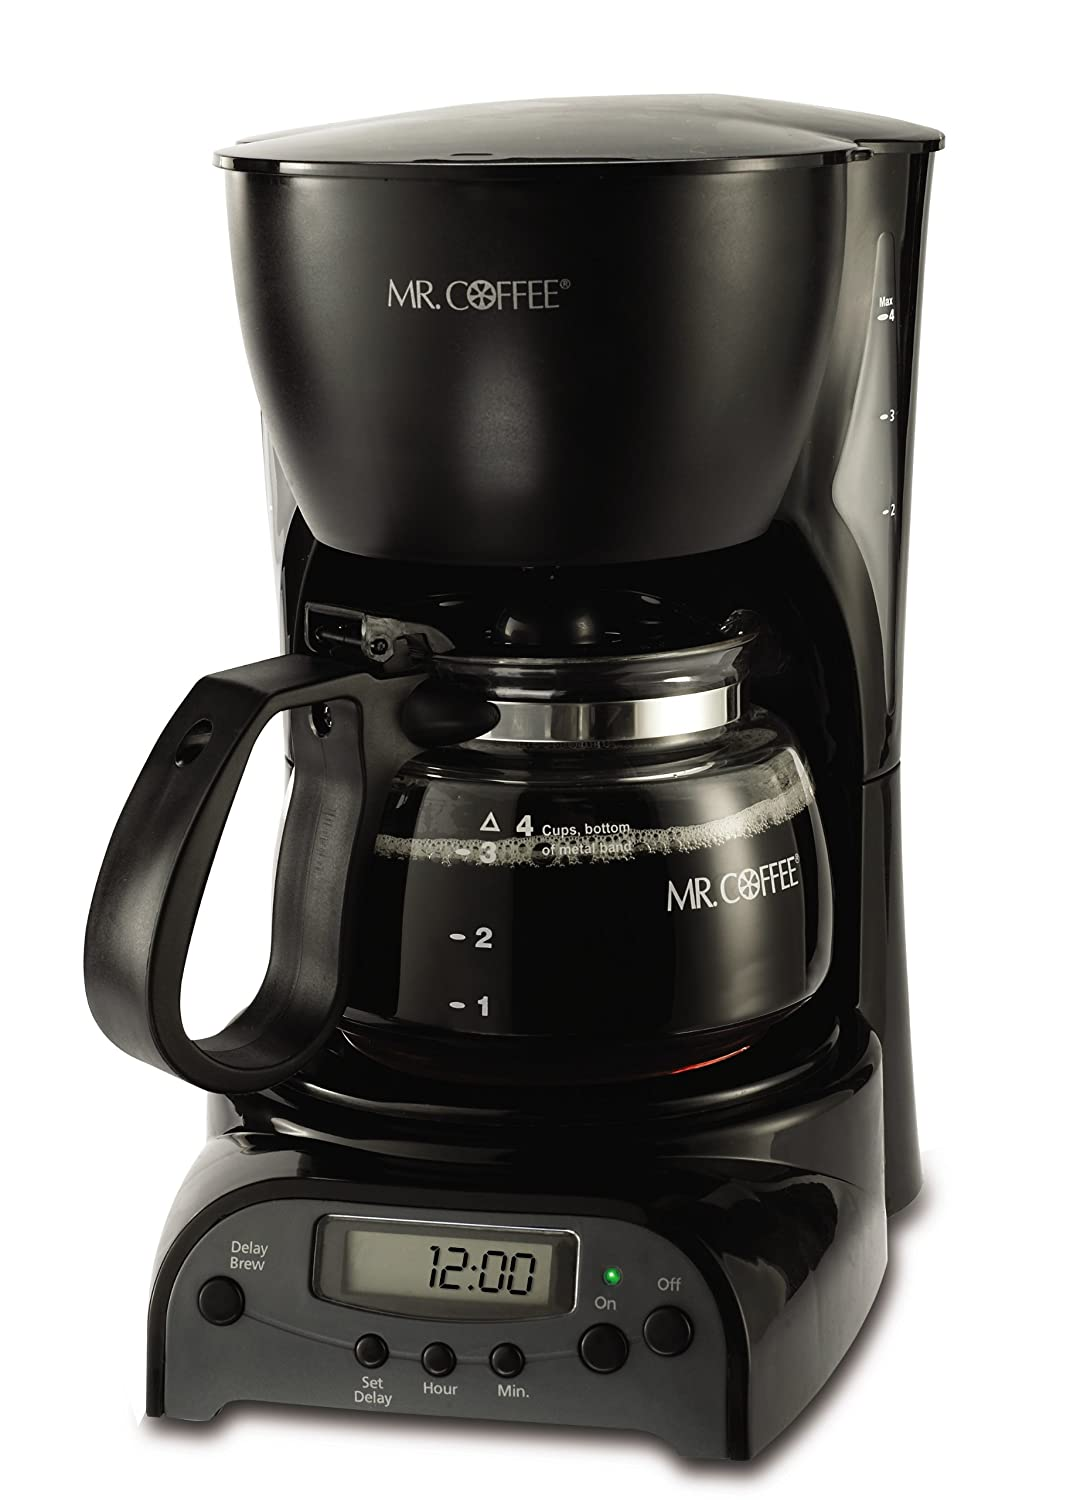 Coffee Maker Cleaning Mr Coffee : Mr Coffee DRX5 4-Cup Programmable Coffeemaker Coffee Maker Brewer Espresso Black 72179228134 eBay